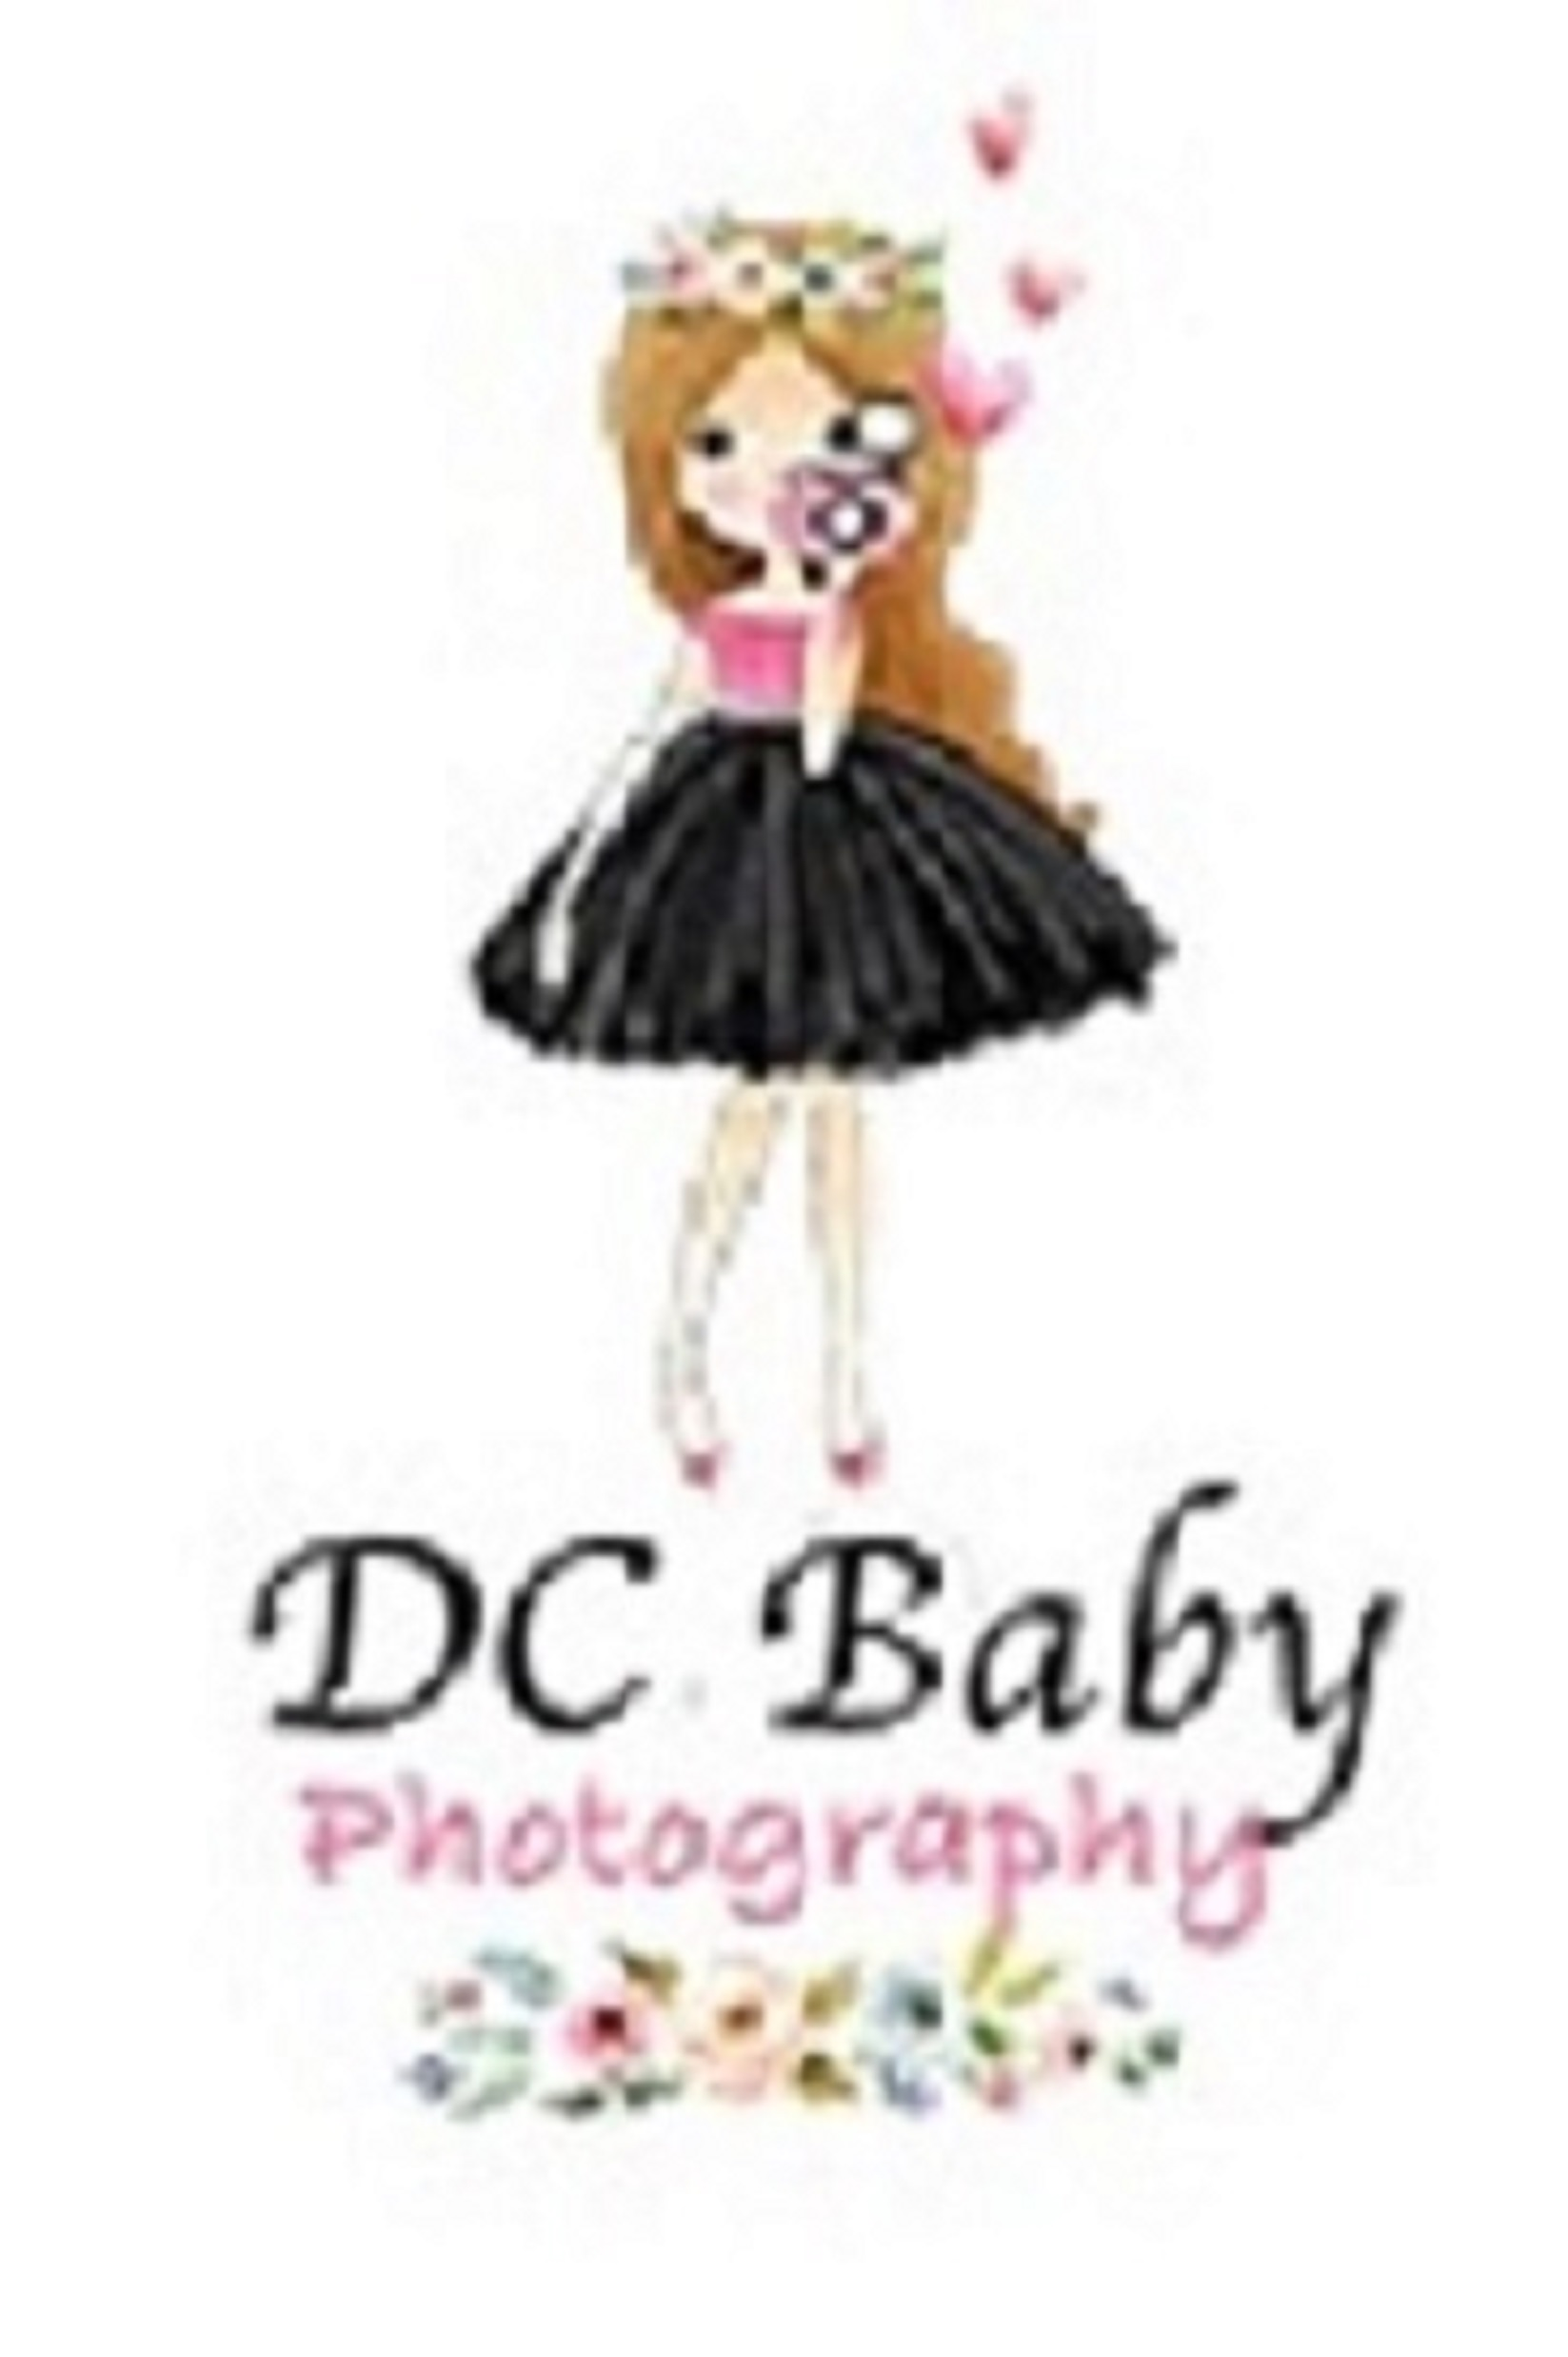 DC Baby Photography